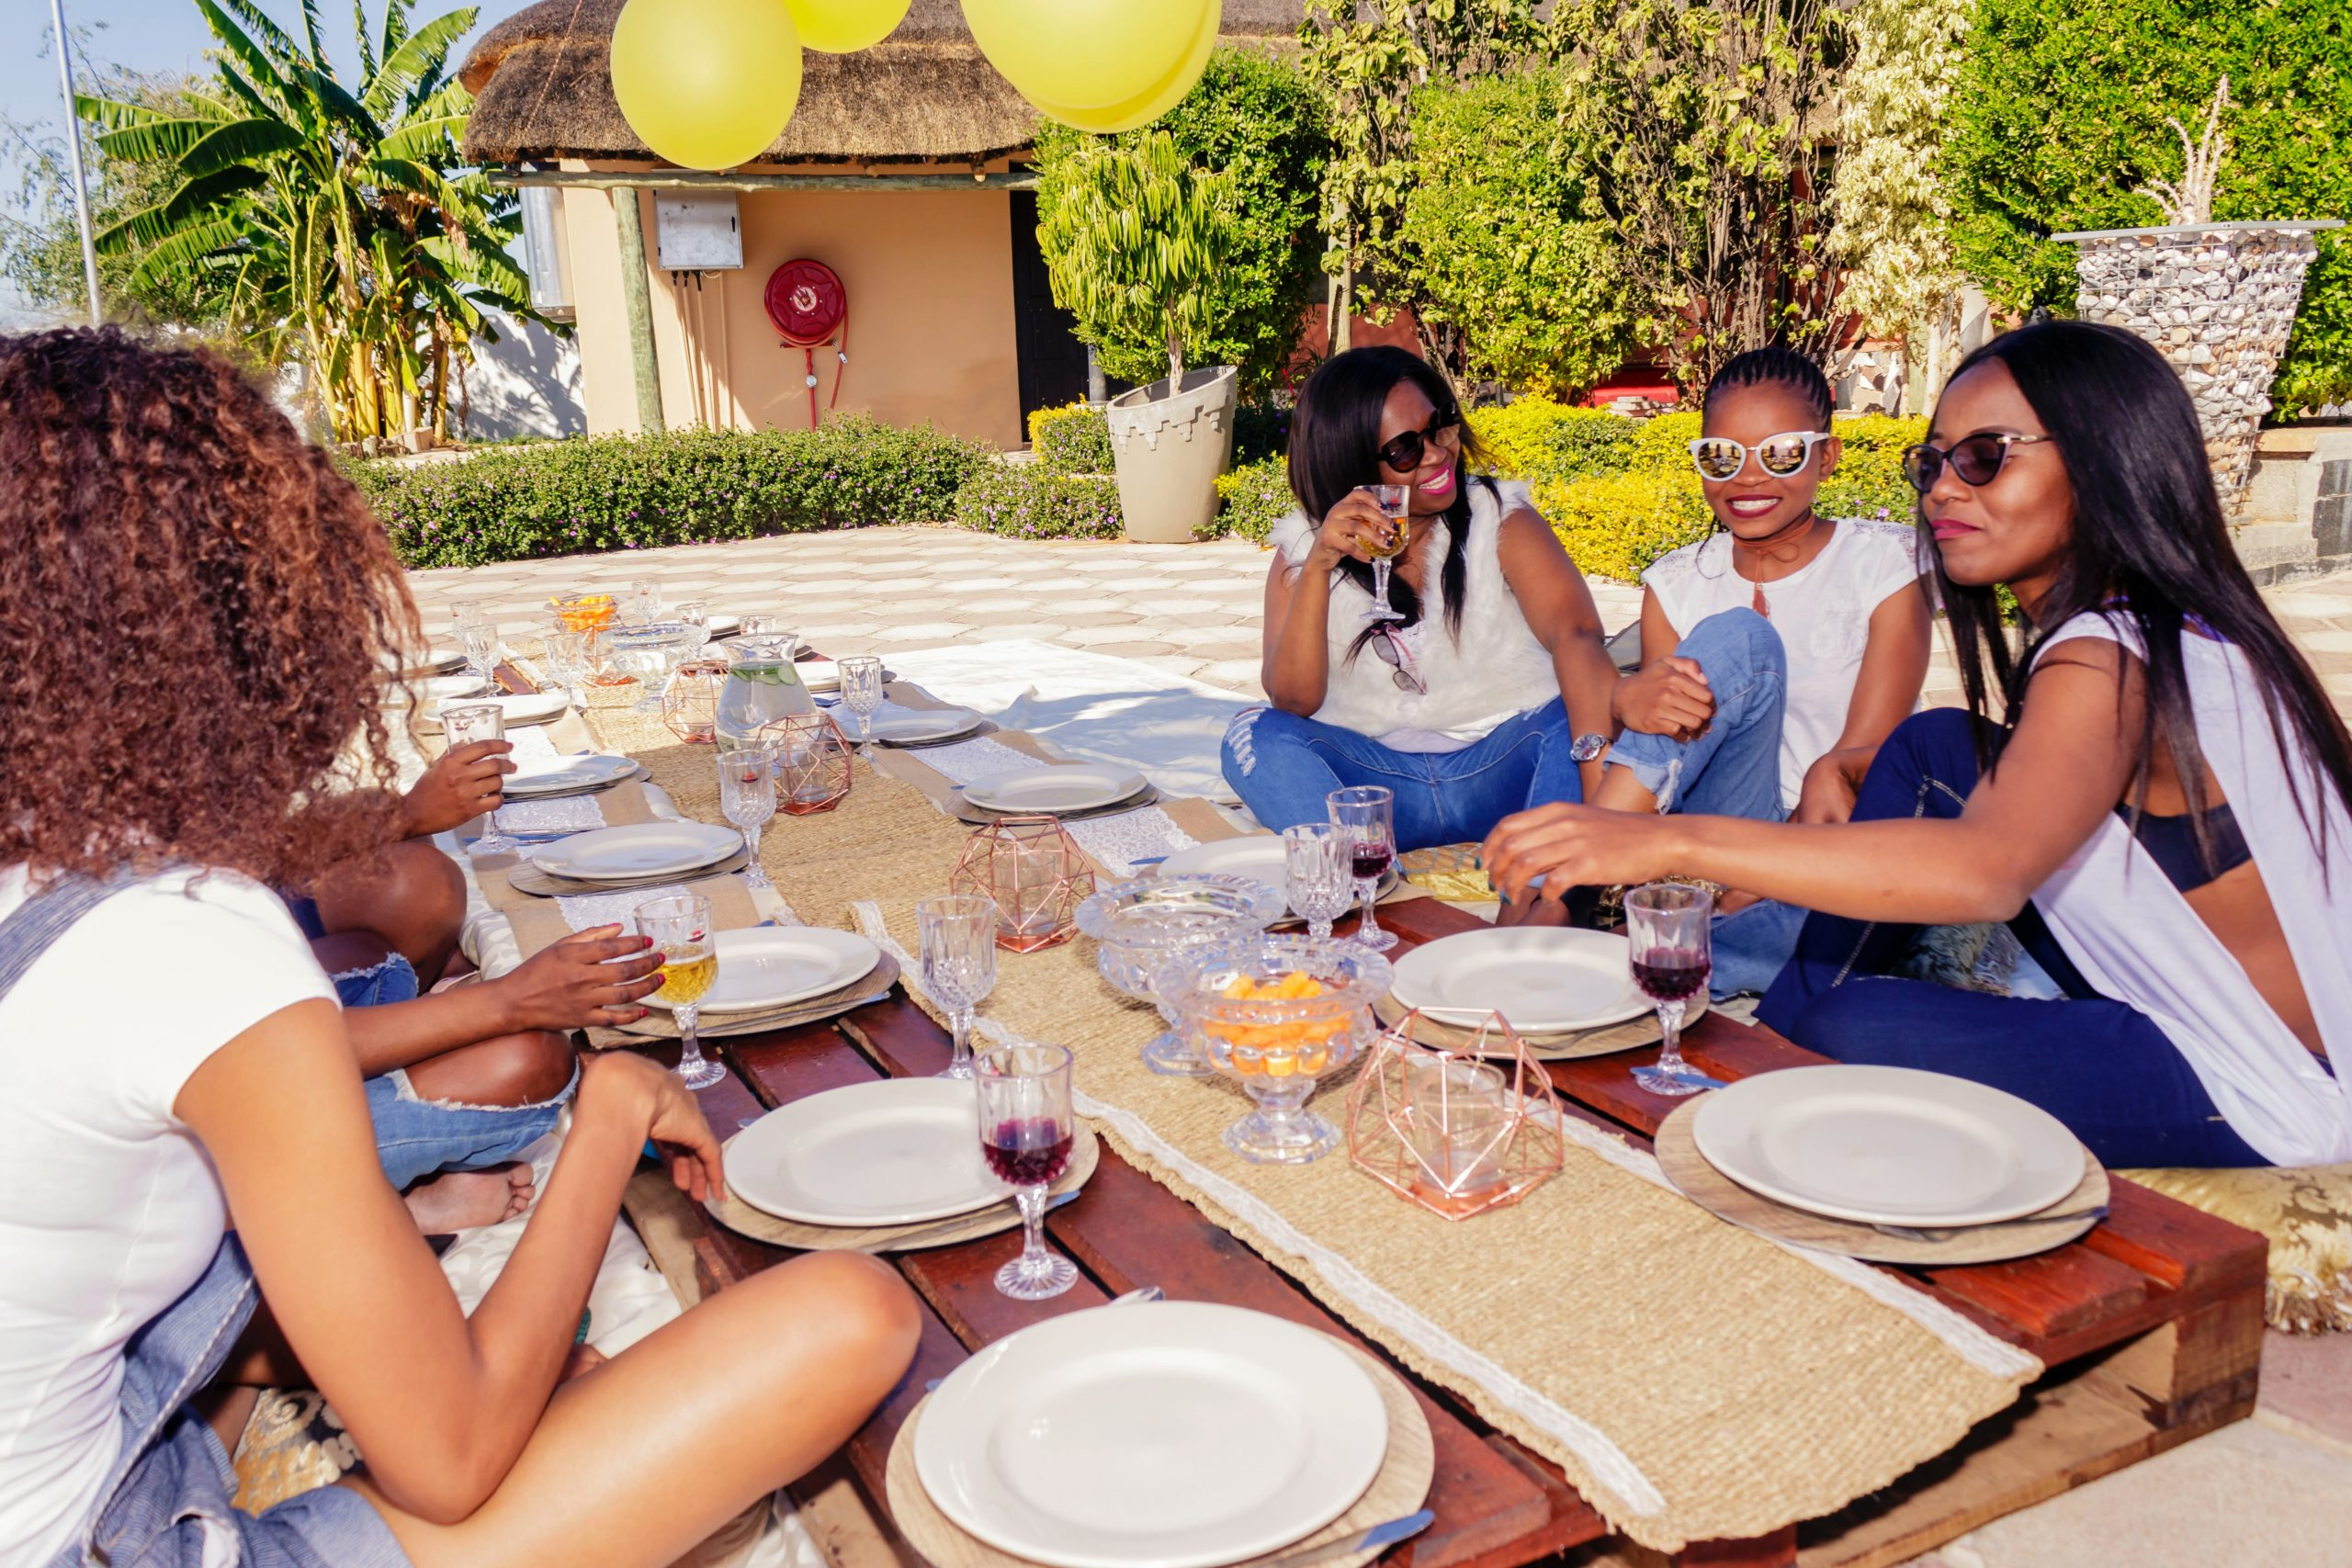 Group of black women on holiday